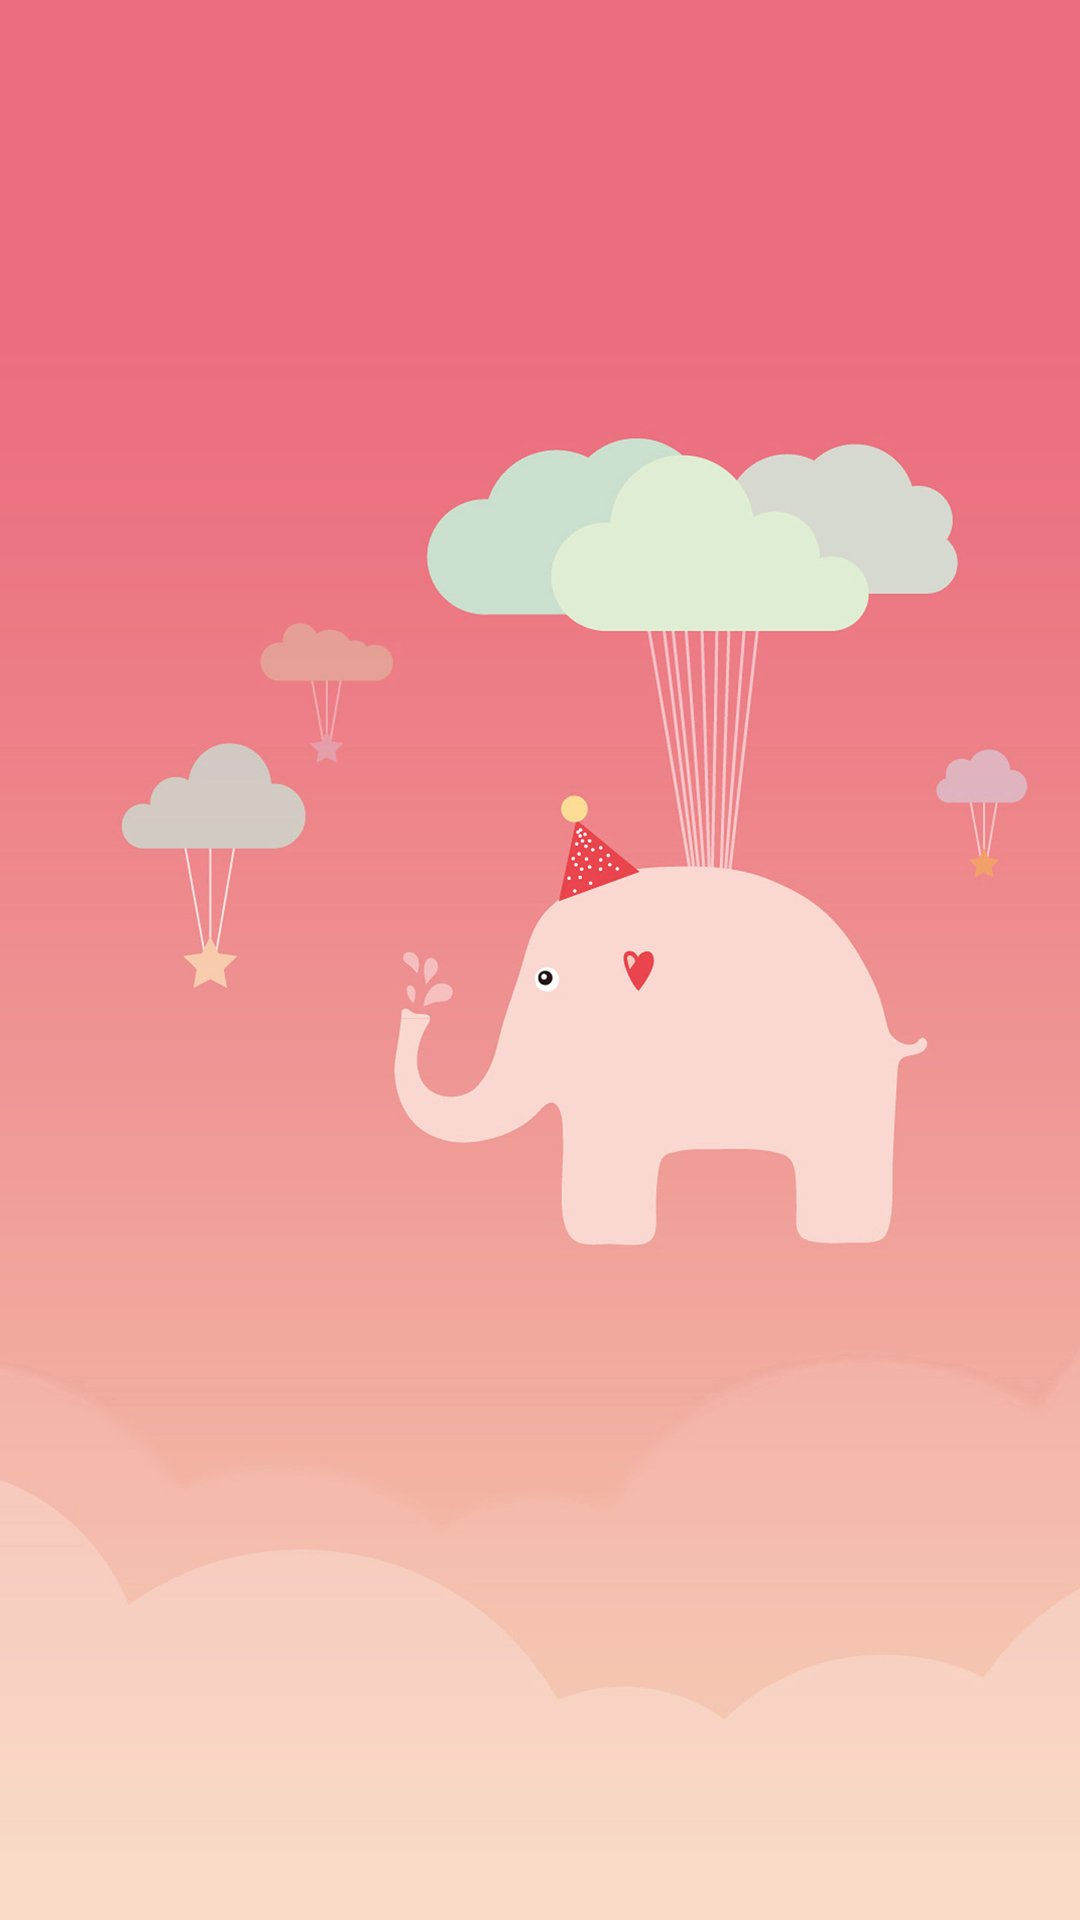 Cute iphone wallpapers tumblr hd - Cute Elephant Iphone 6 Wallpaper Download Iphone Wallpapers Ipad